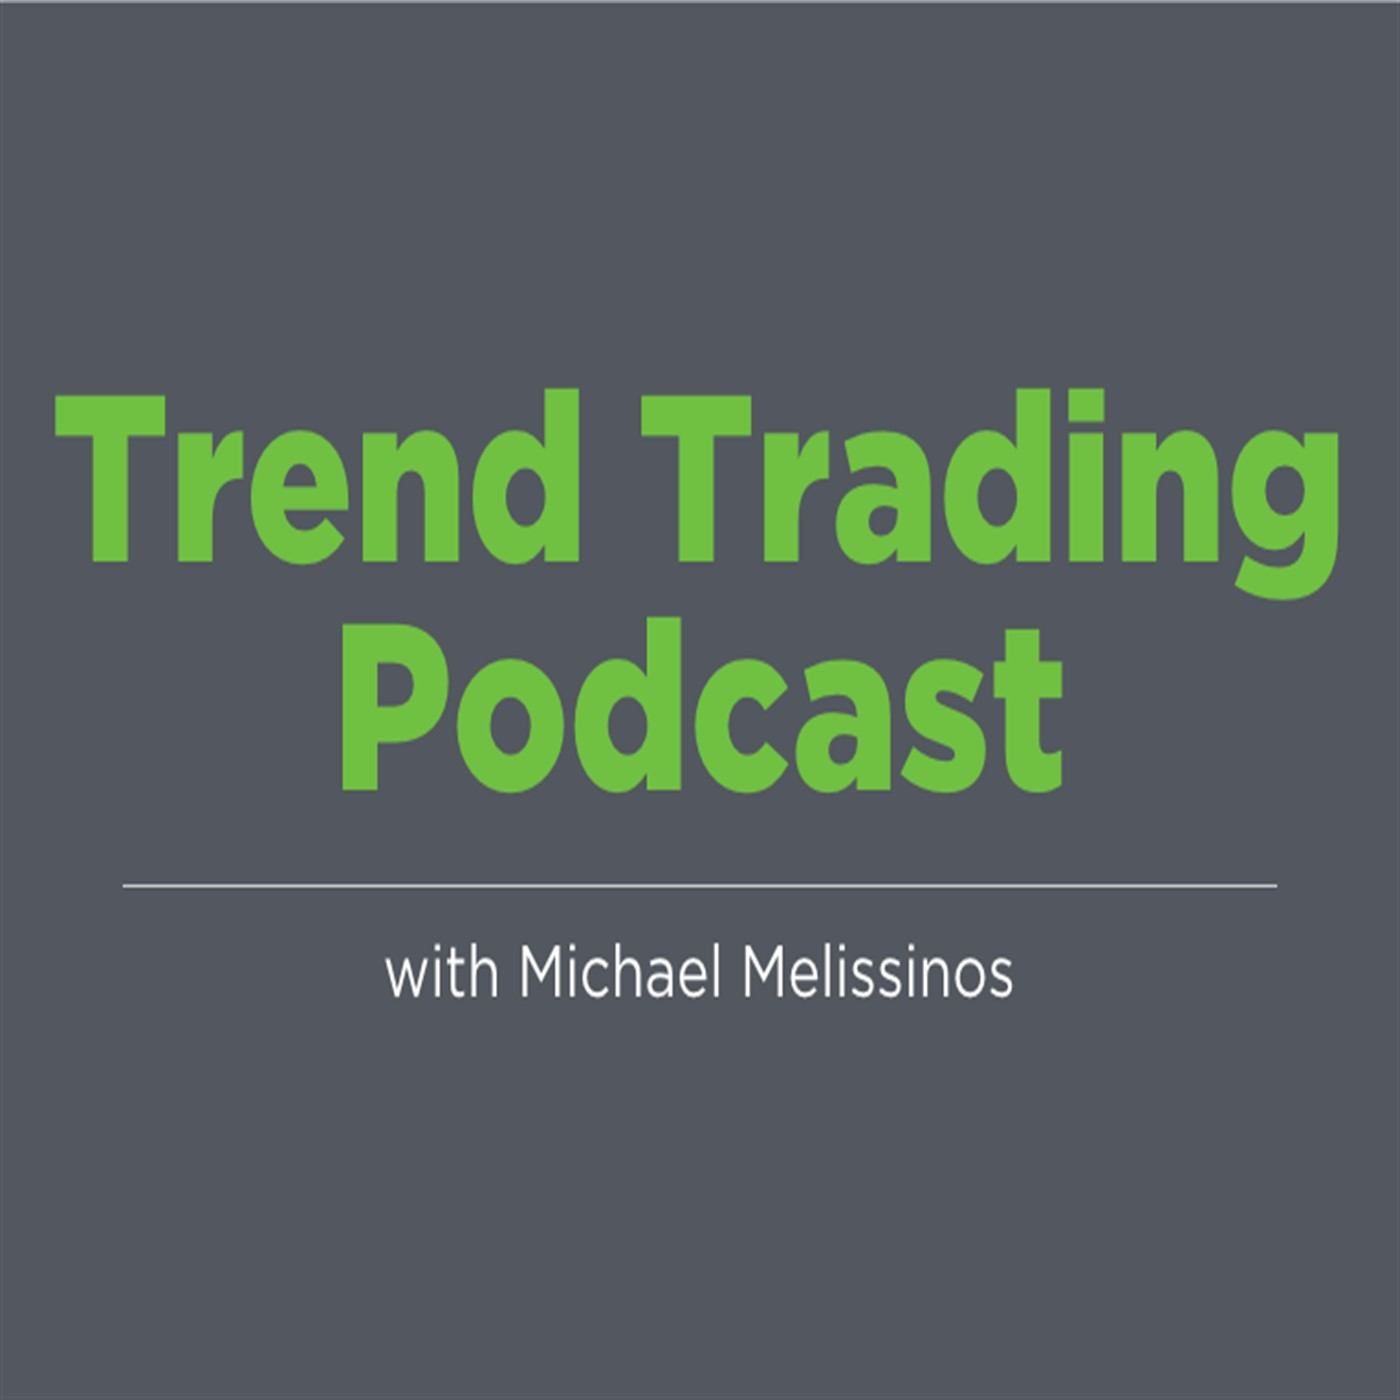 Trend Trading Podcast with Michael Melissinos